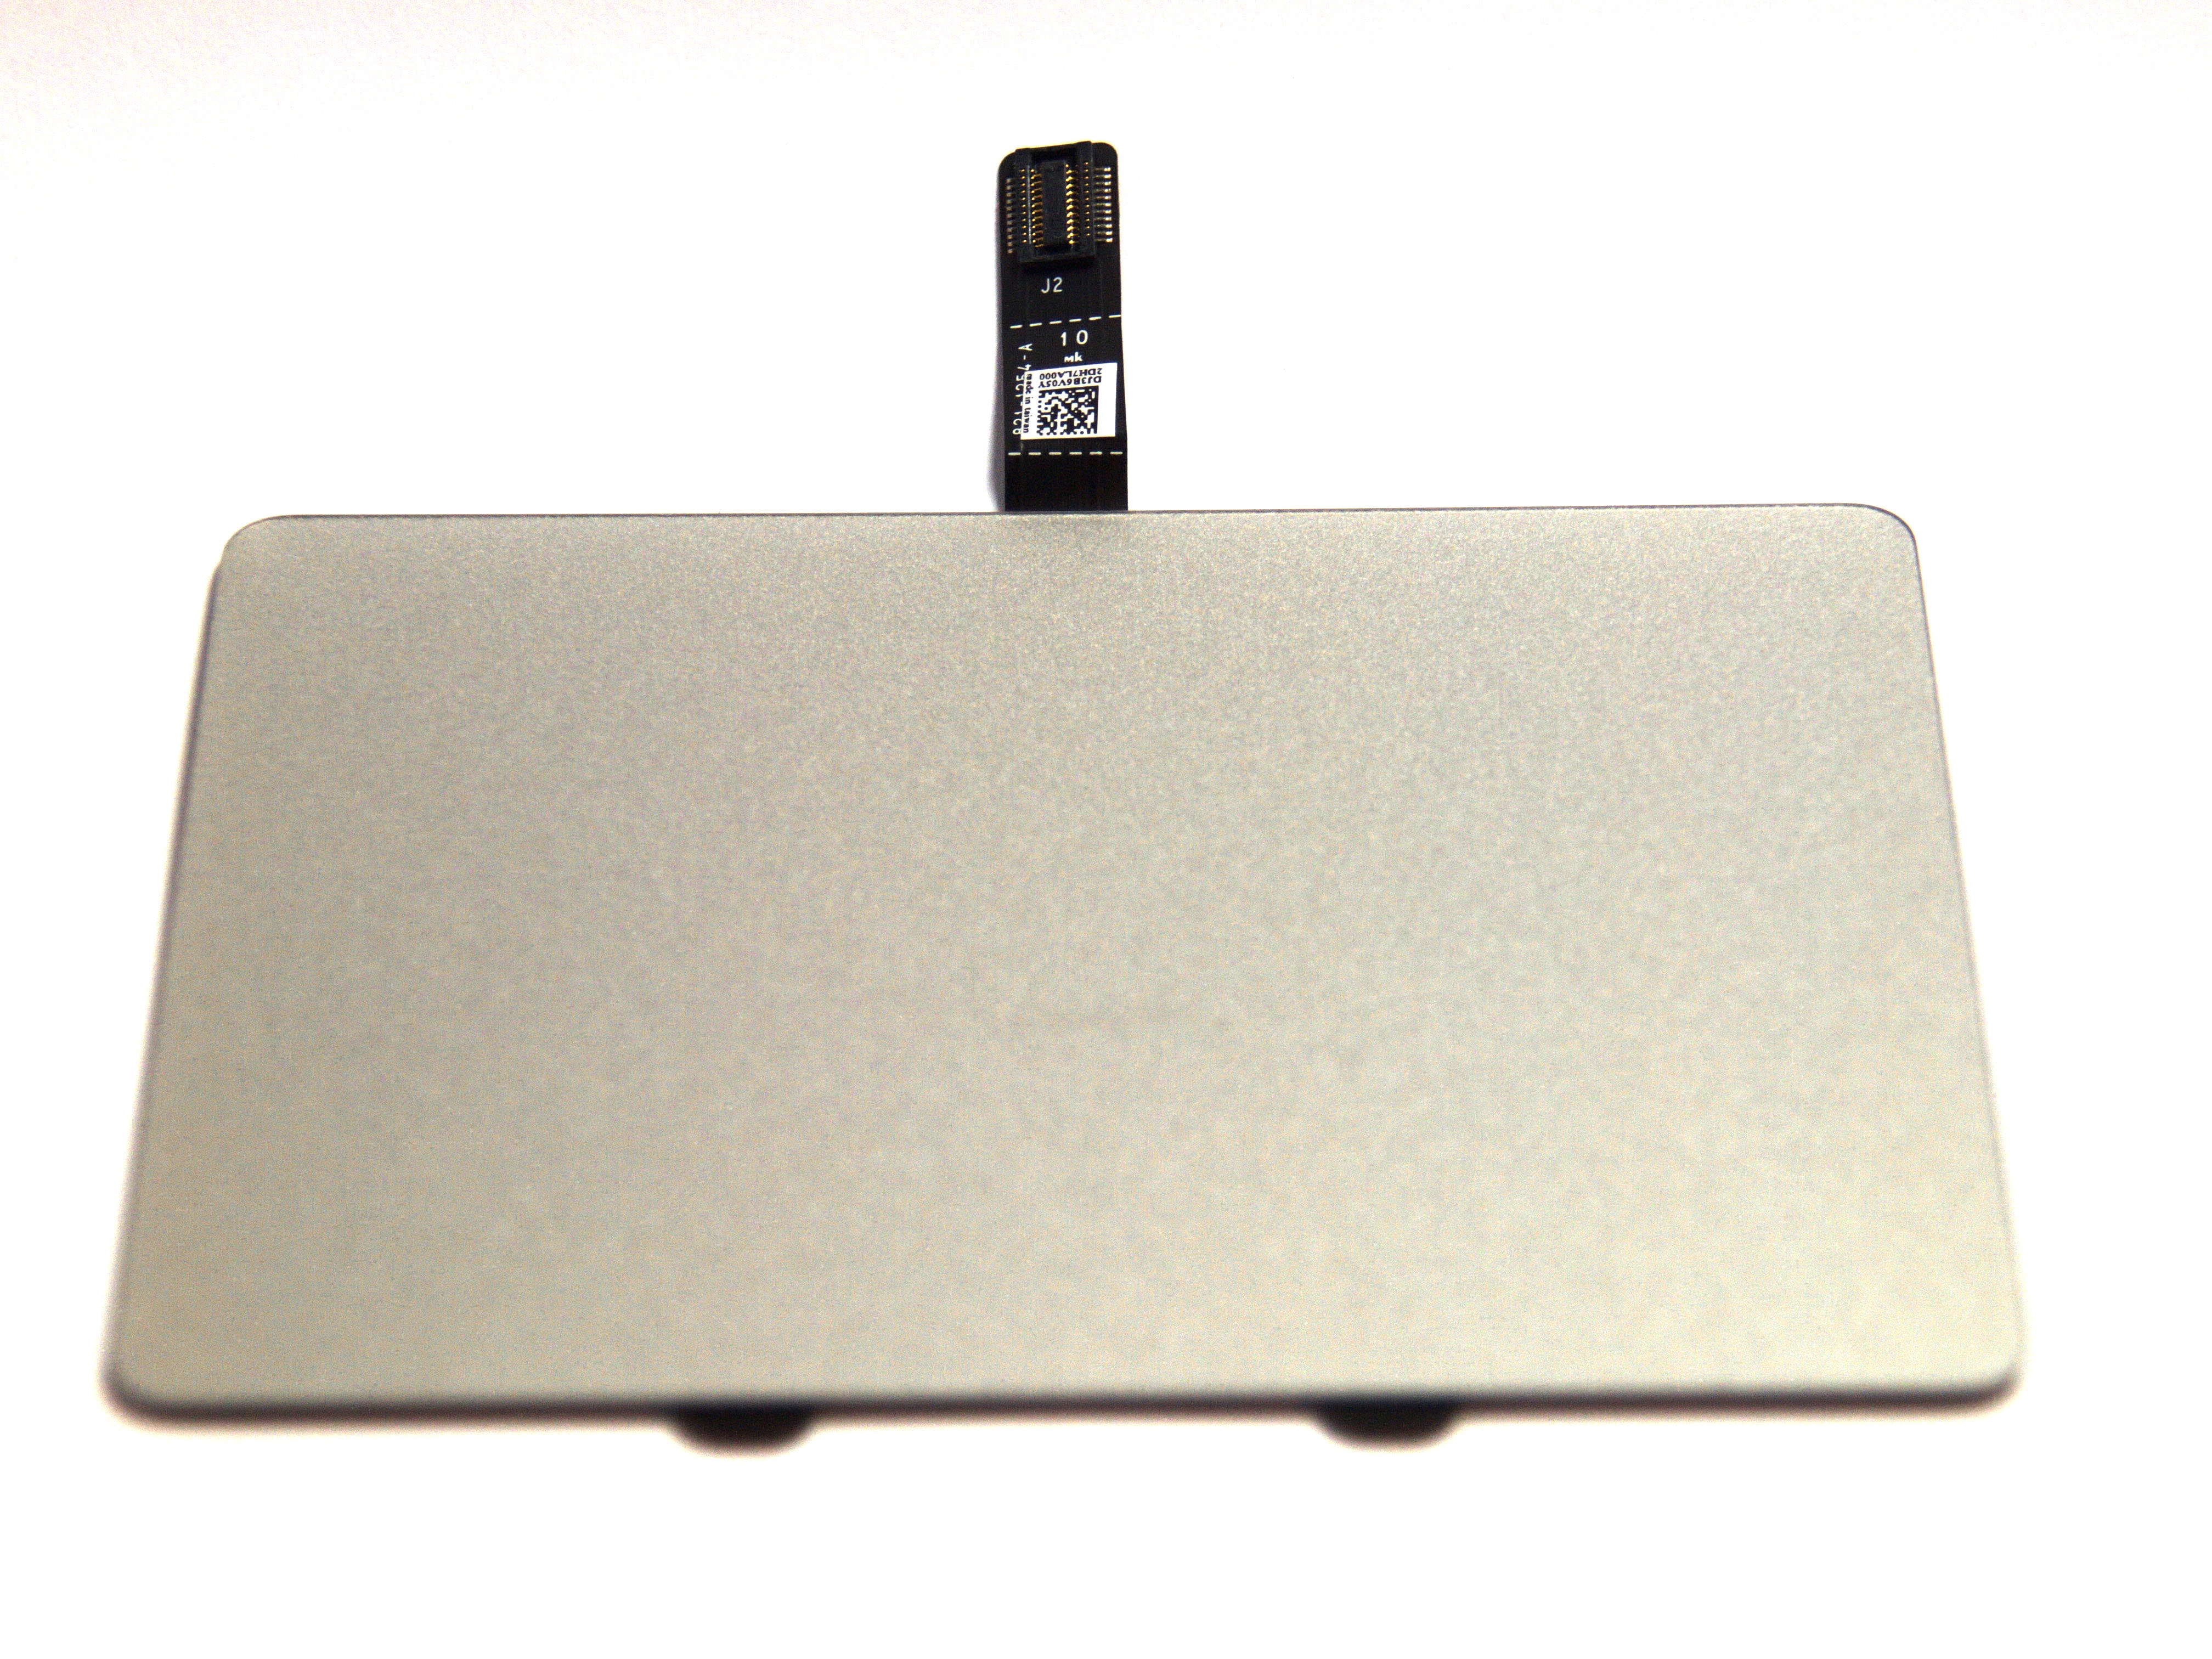 "Trackpad for Apple MacBook Pro 13"" A1278 2009-2012"